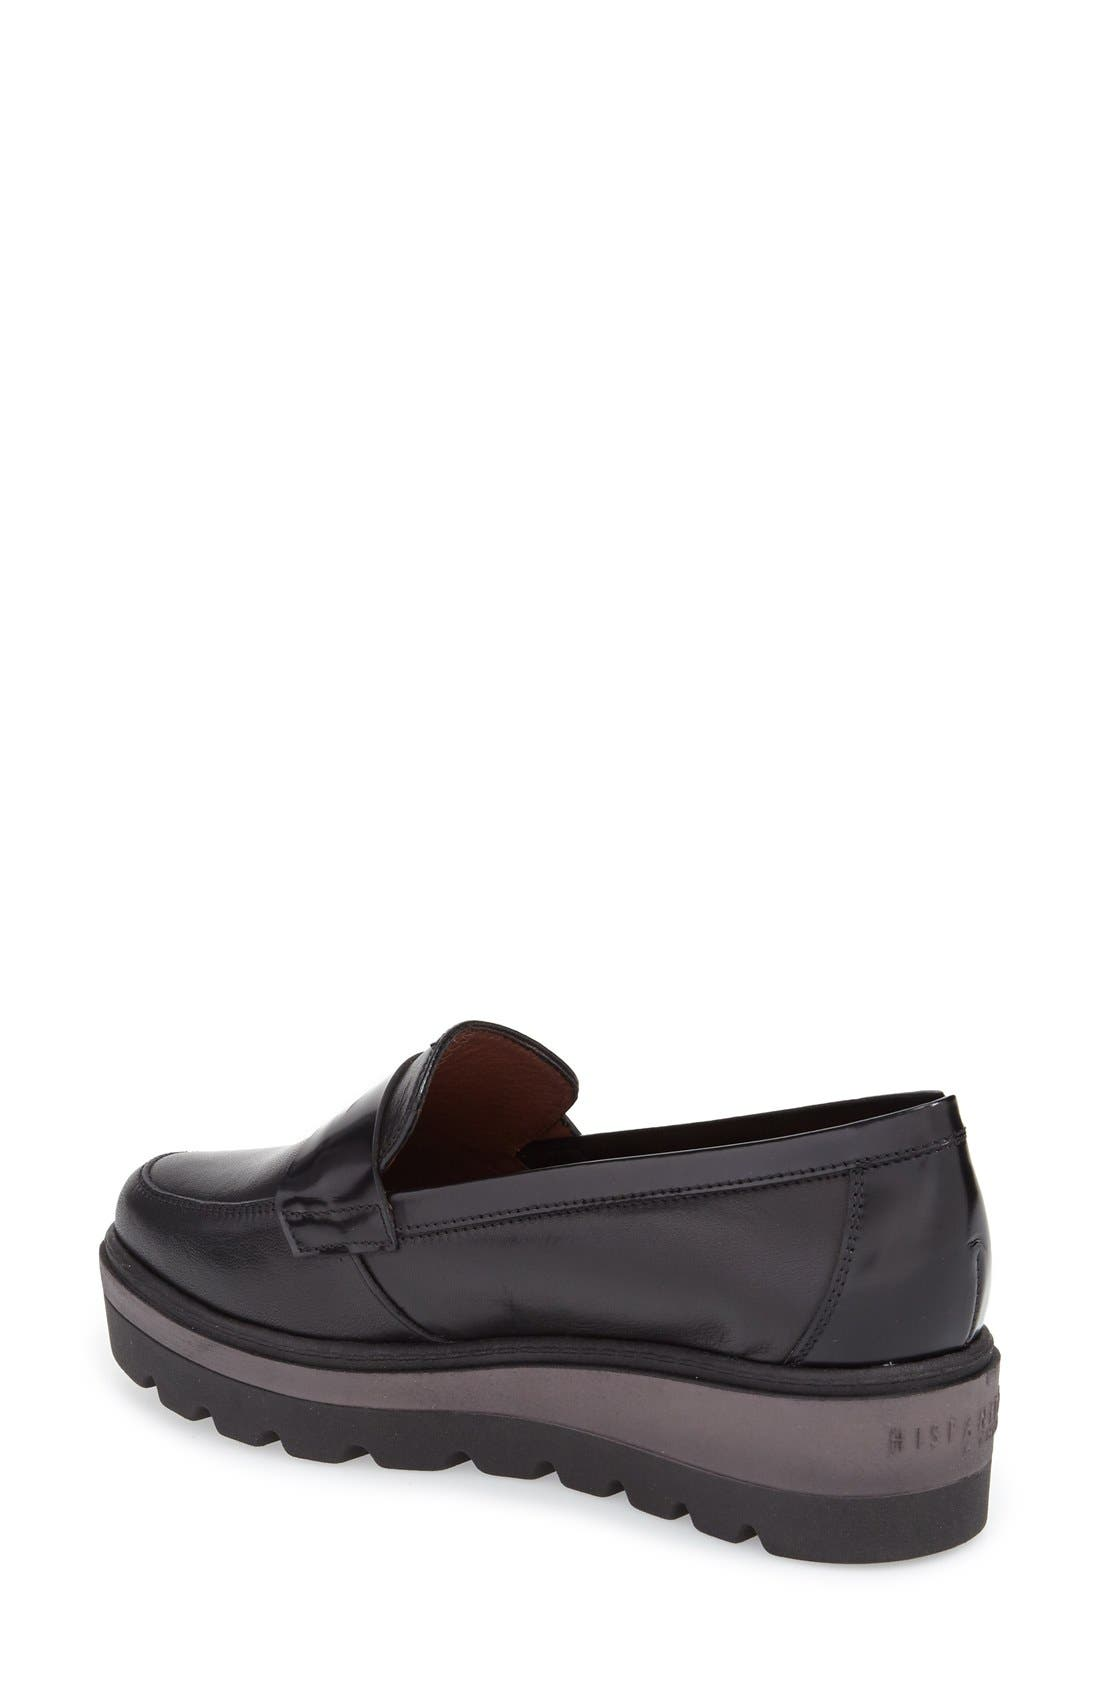 'Acacia' Wedge Loafer,                             Alternate thumbnail 2, color,                             001